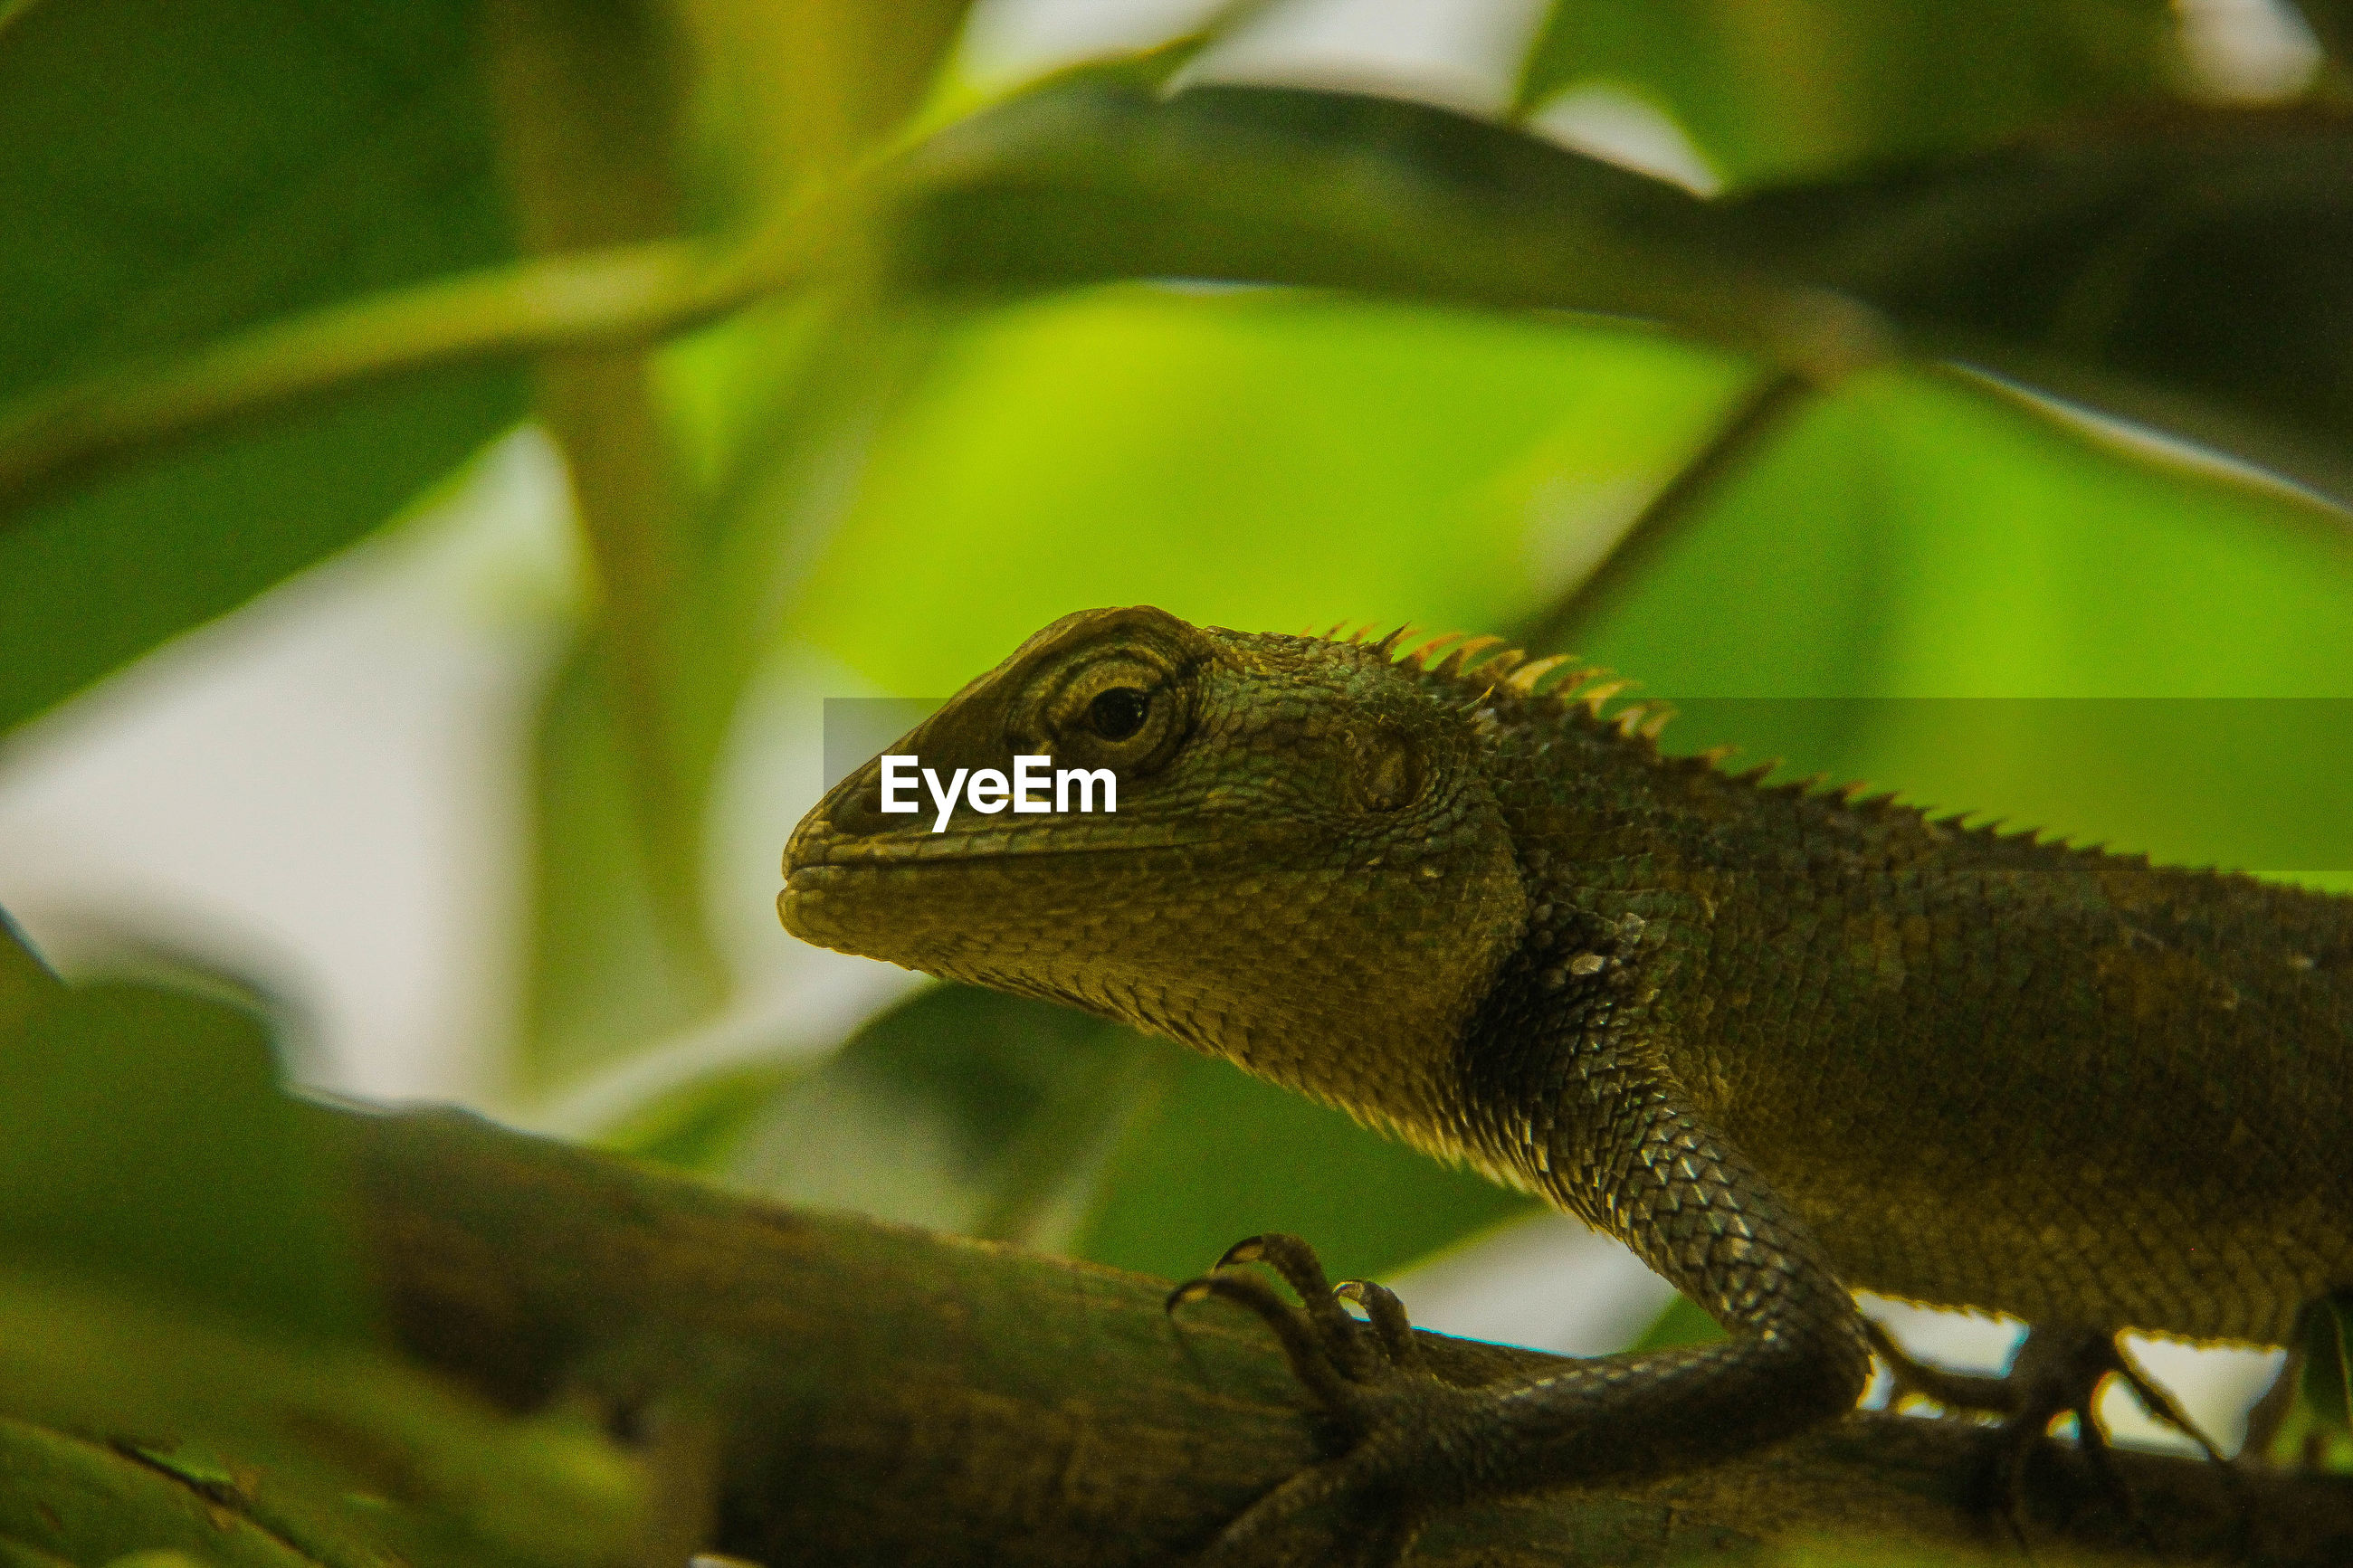 CLOSE-UP OF A LIZARD ON TREE BRANCH